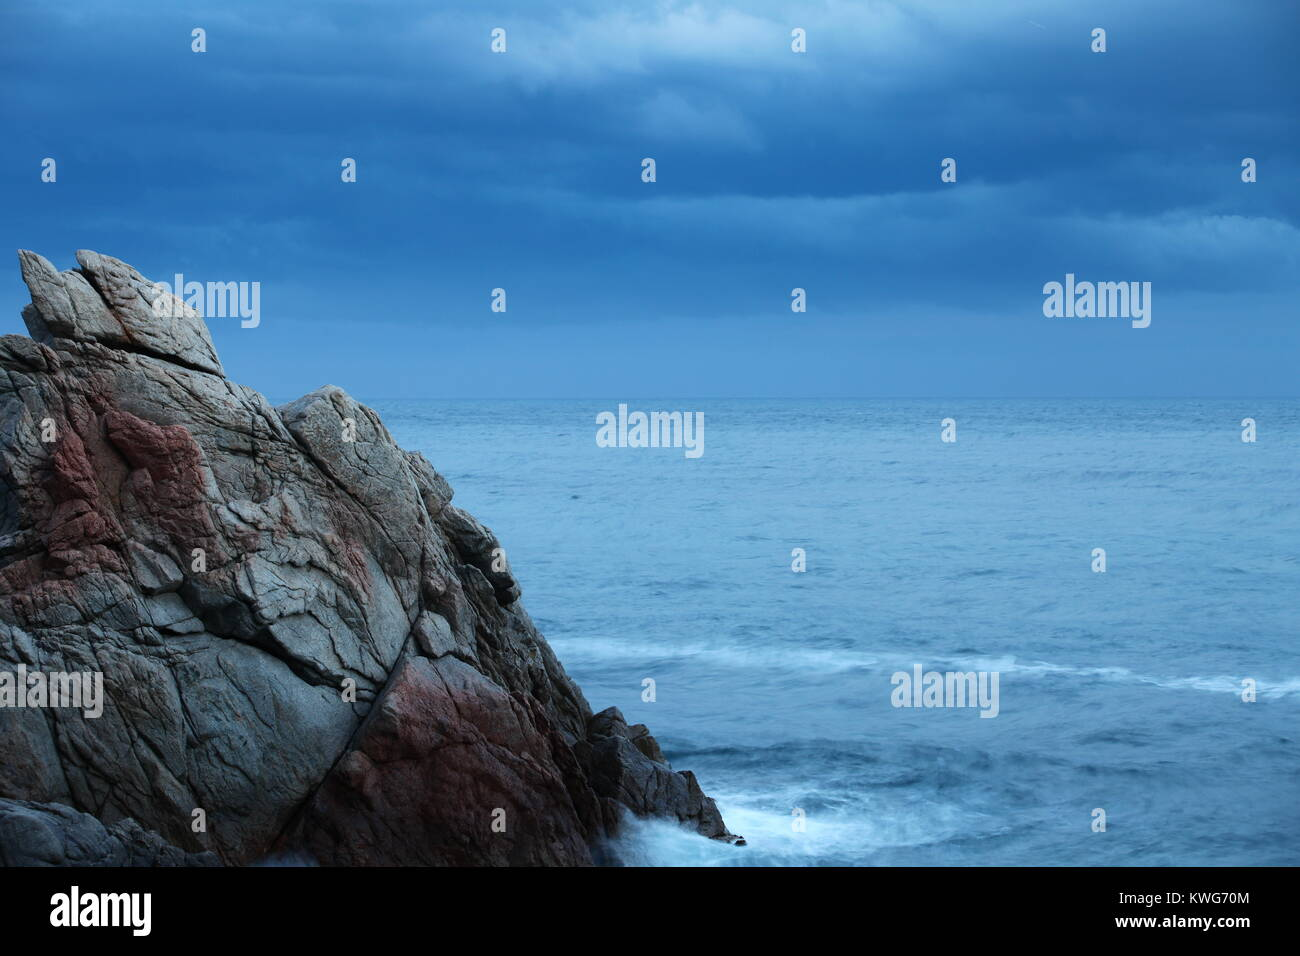 Scaur Dramatic seascape in the evening - Stock Image